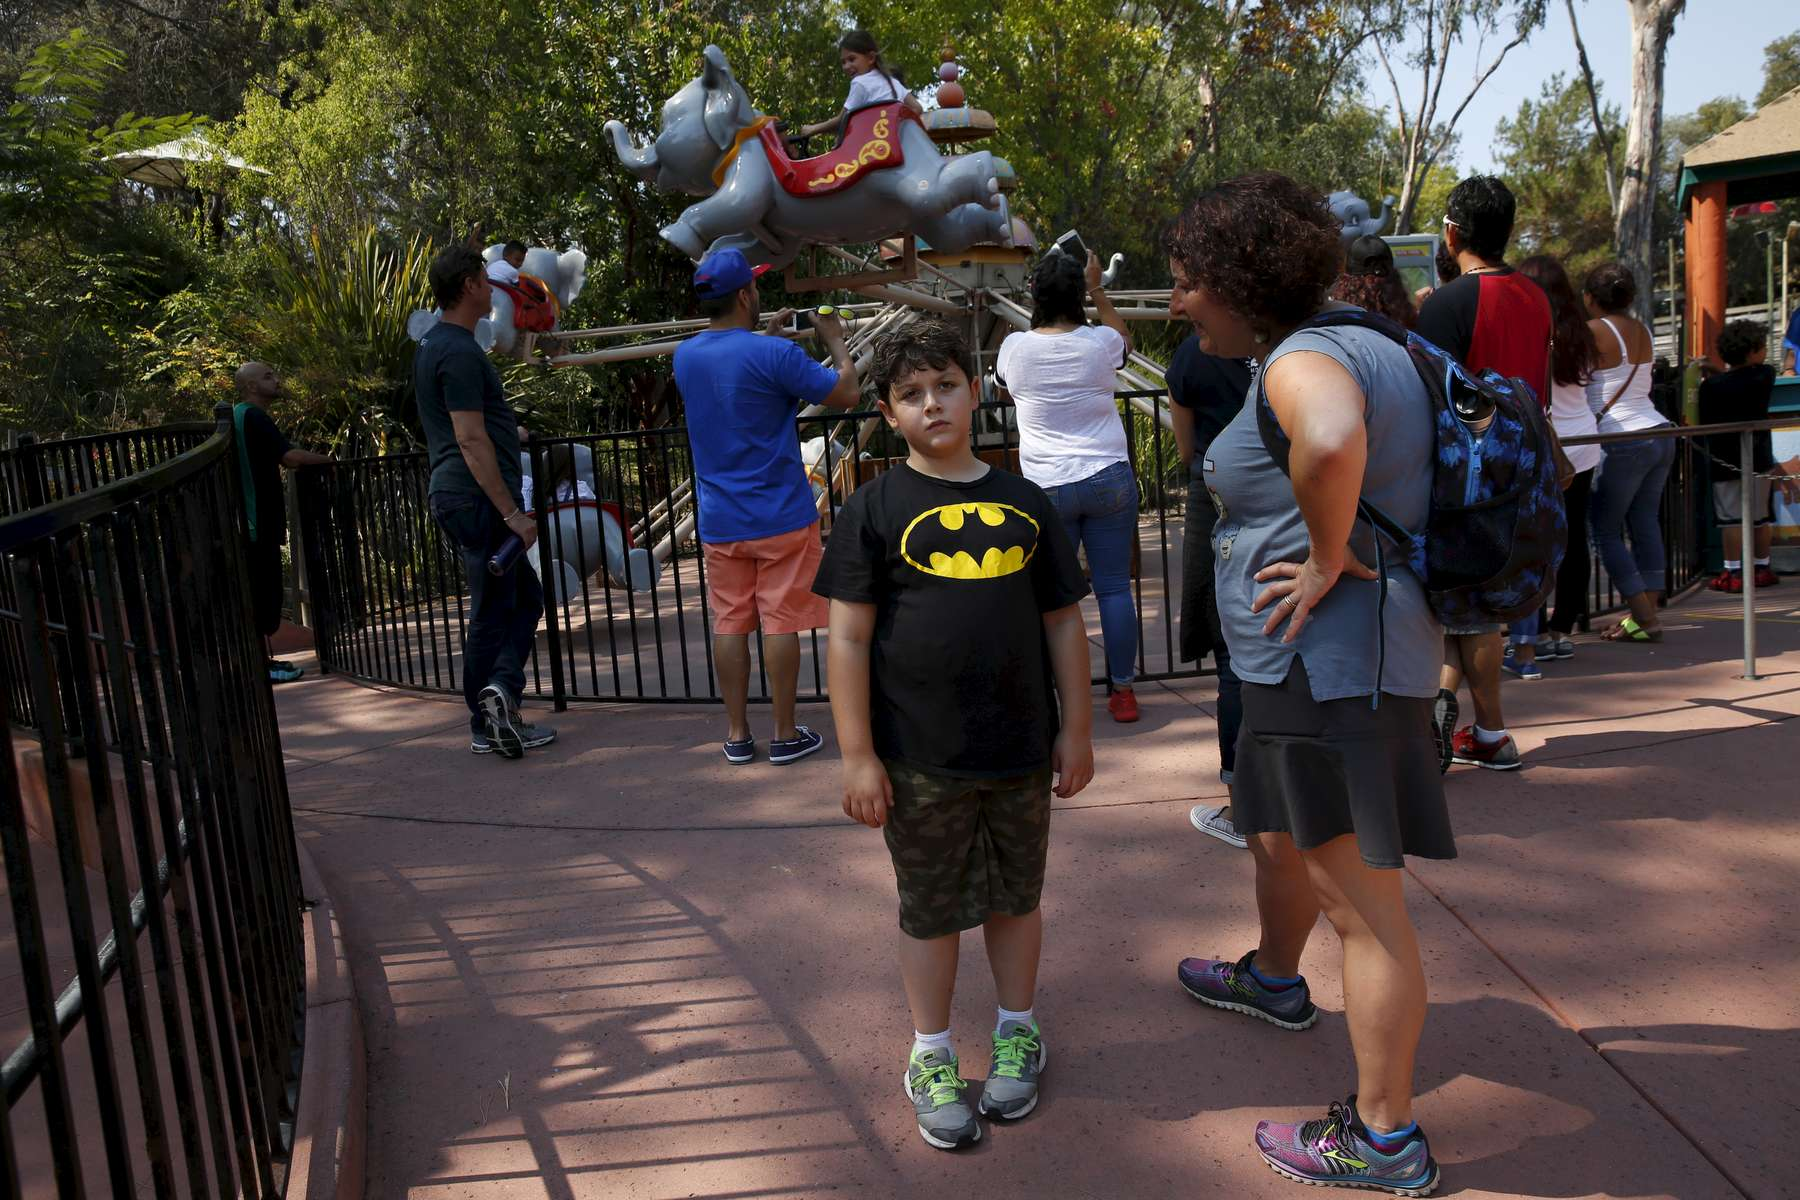 James, 8, expresses his frustration with his mother Sara Kaplan that he is too tall to go on the ride behind him during a family outing to Six Flags amusement park Aug. 20, 2016 in Vallejo, Calif. The prospect of puberty can make James nervous.